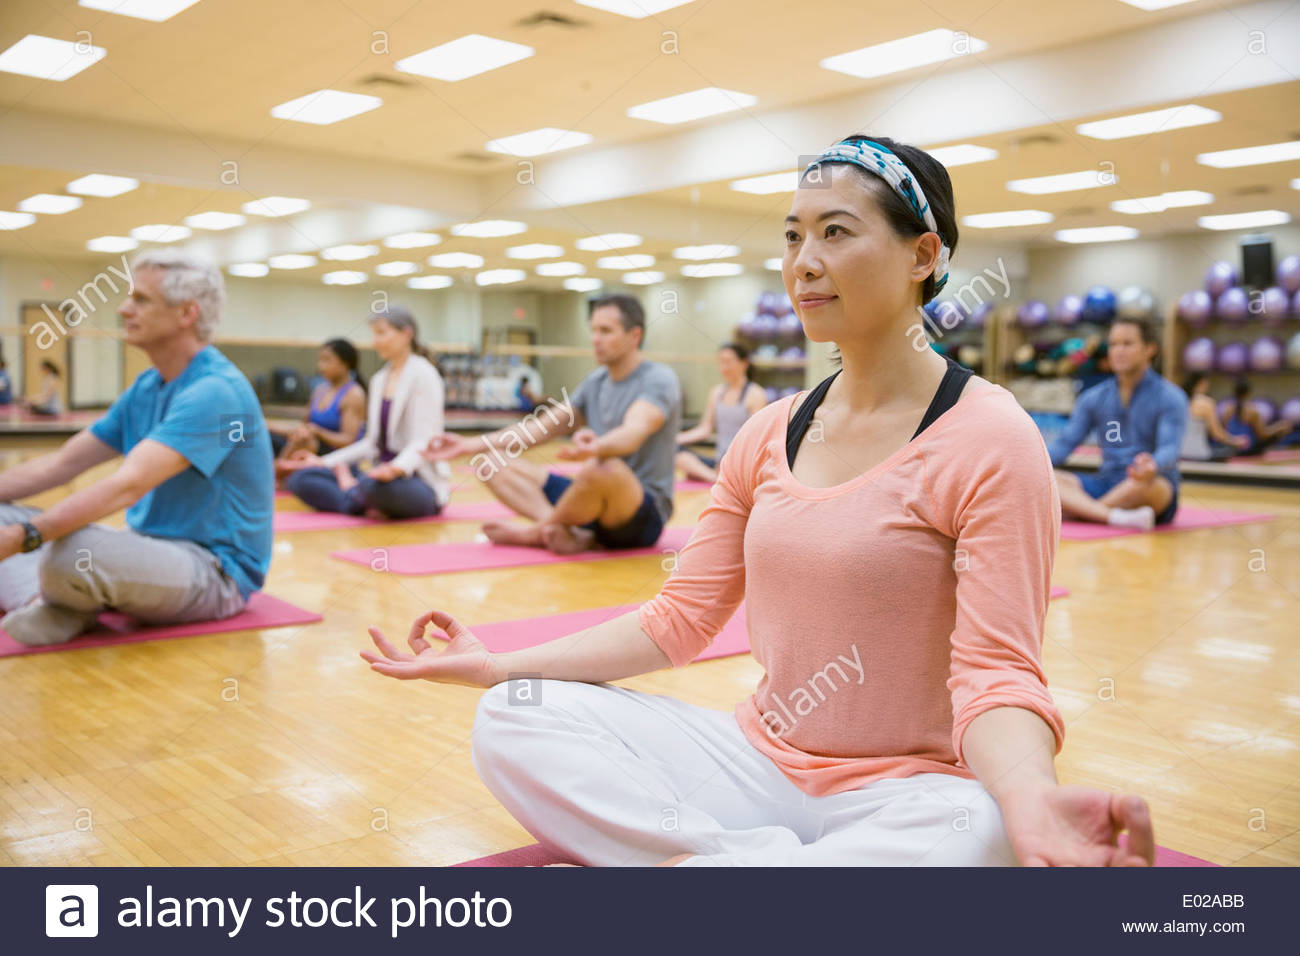 Groupe en position du lotus en yoga class Photo Stock